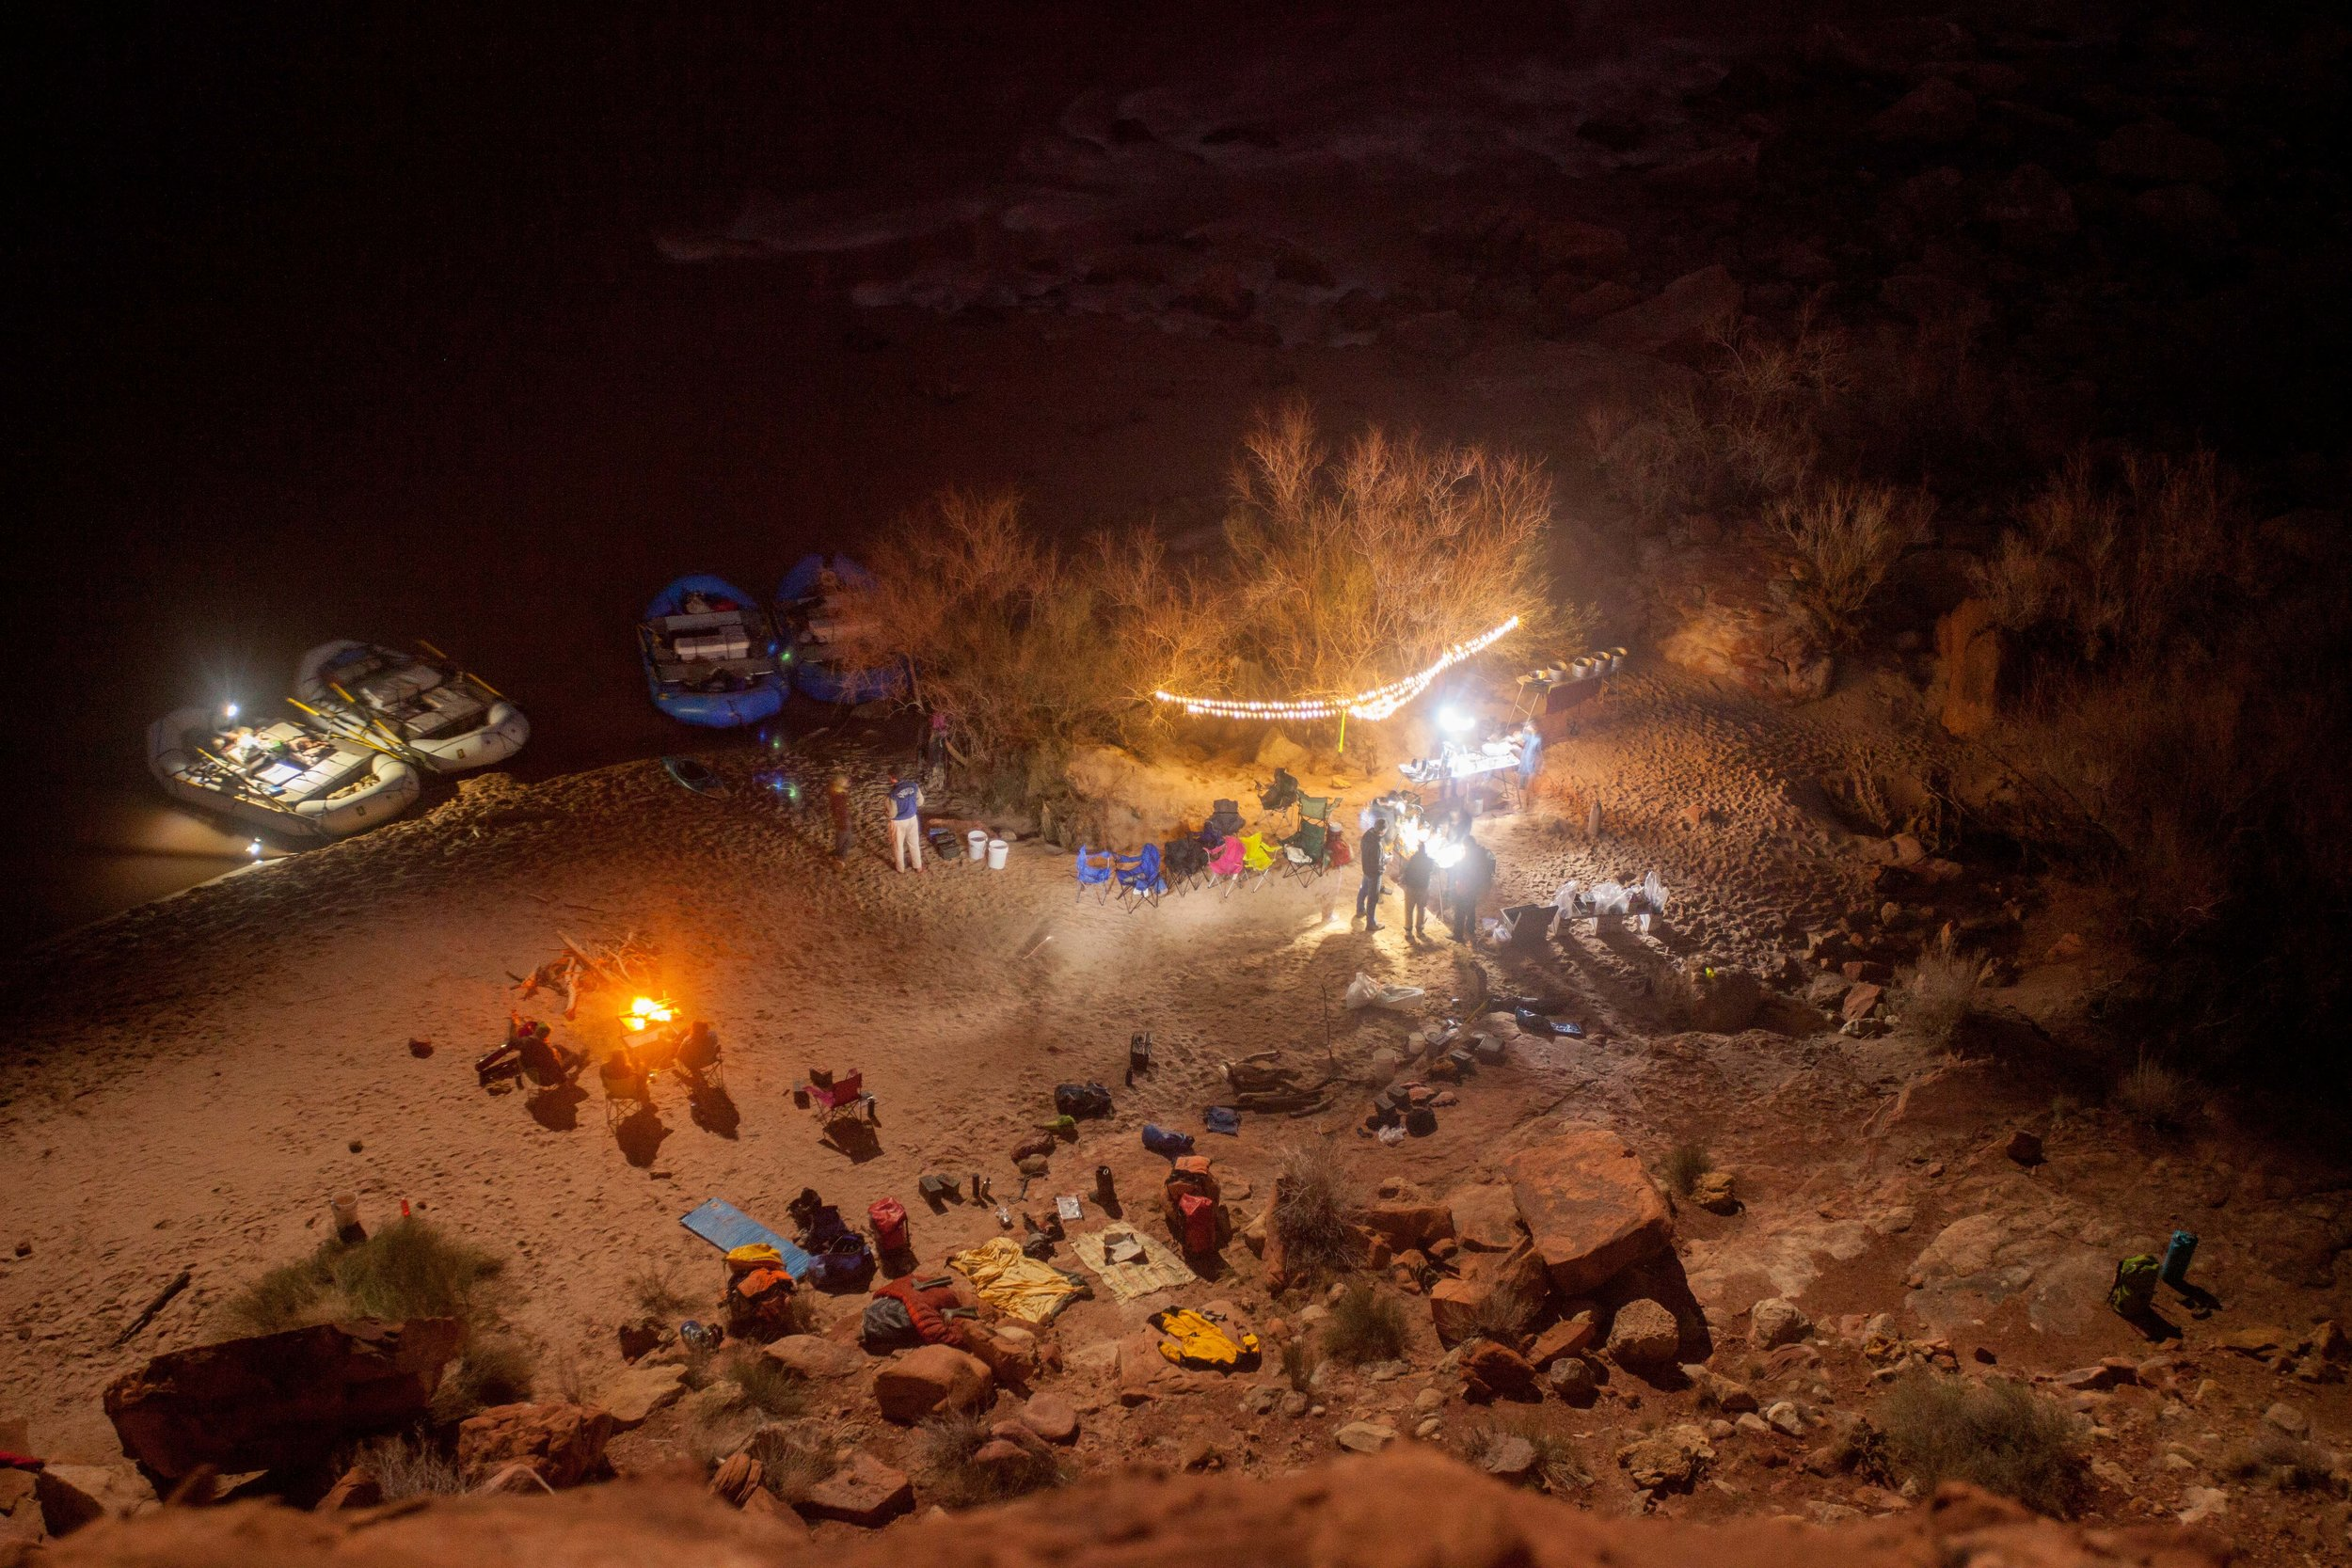 Our sprawling camp at night